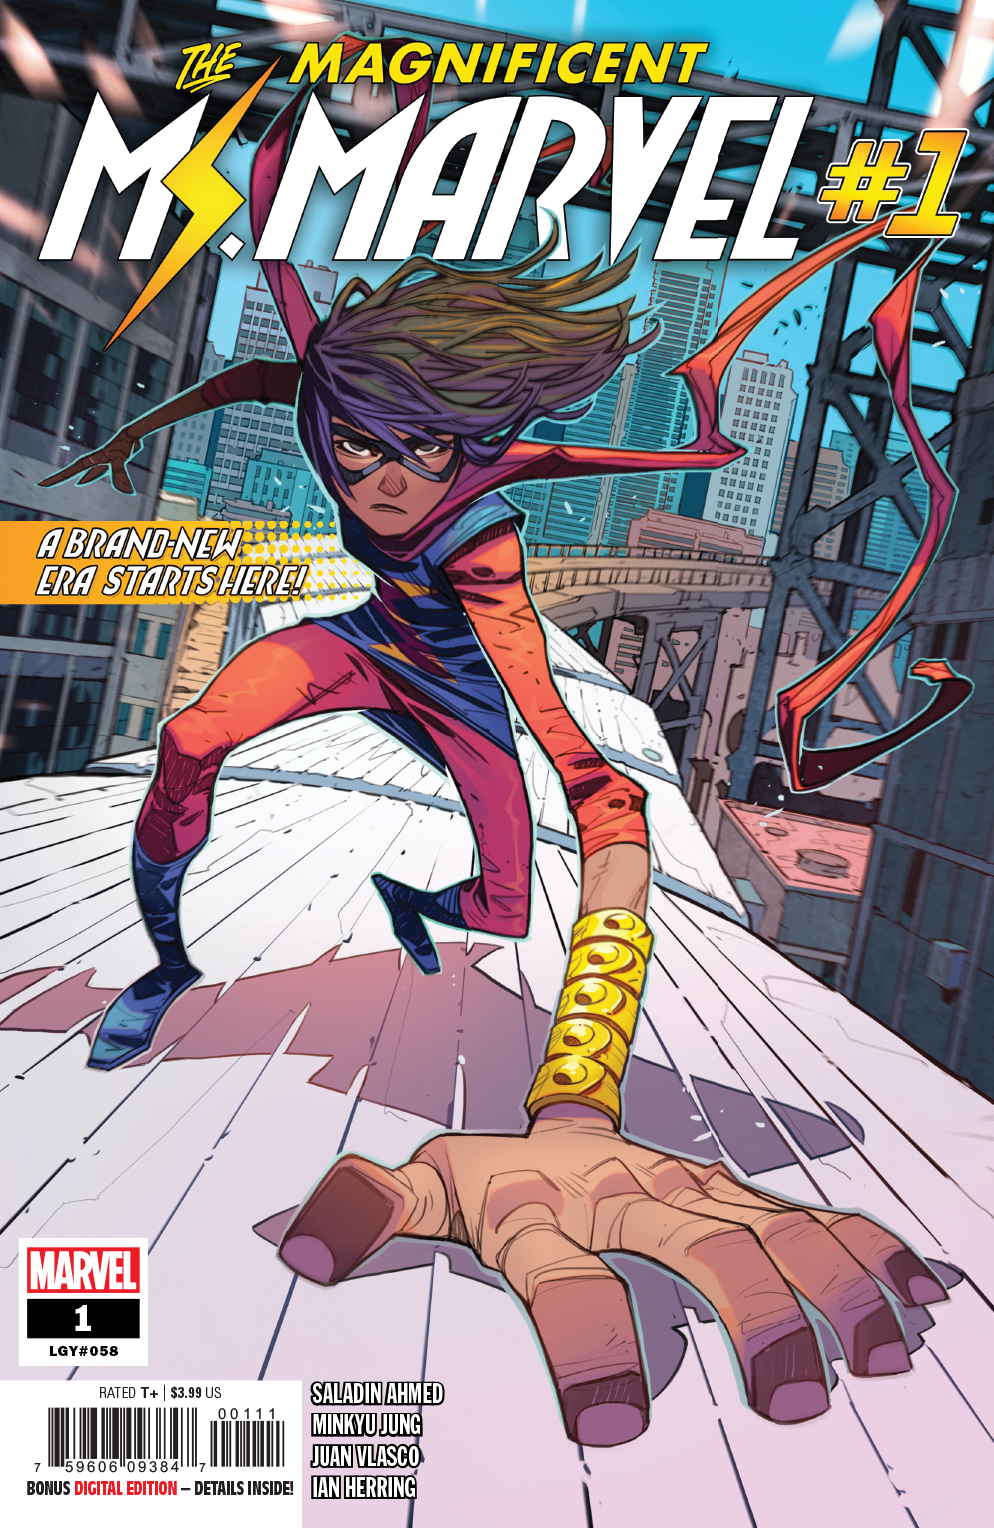 The Magnificent Ms. Marvel #1  is out 3/13/2019.